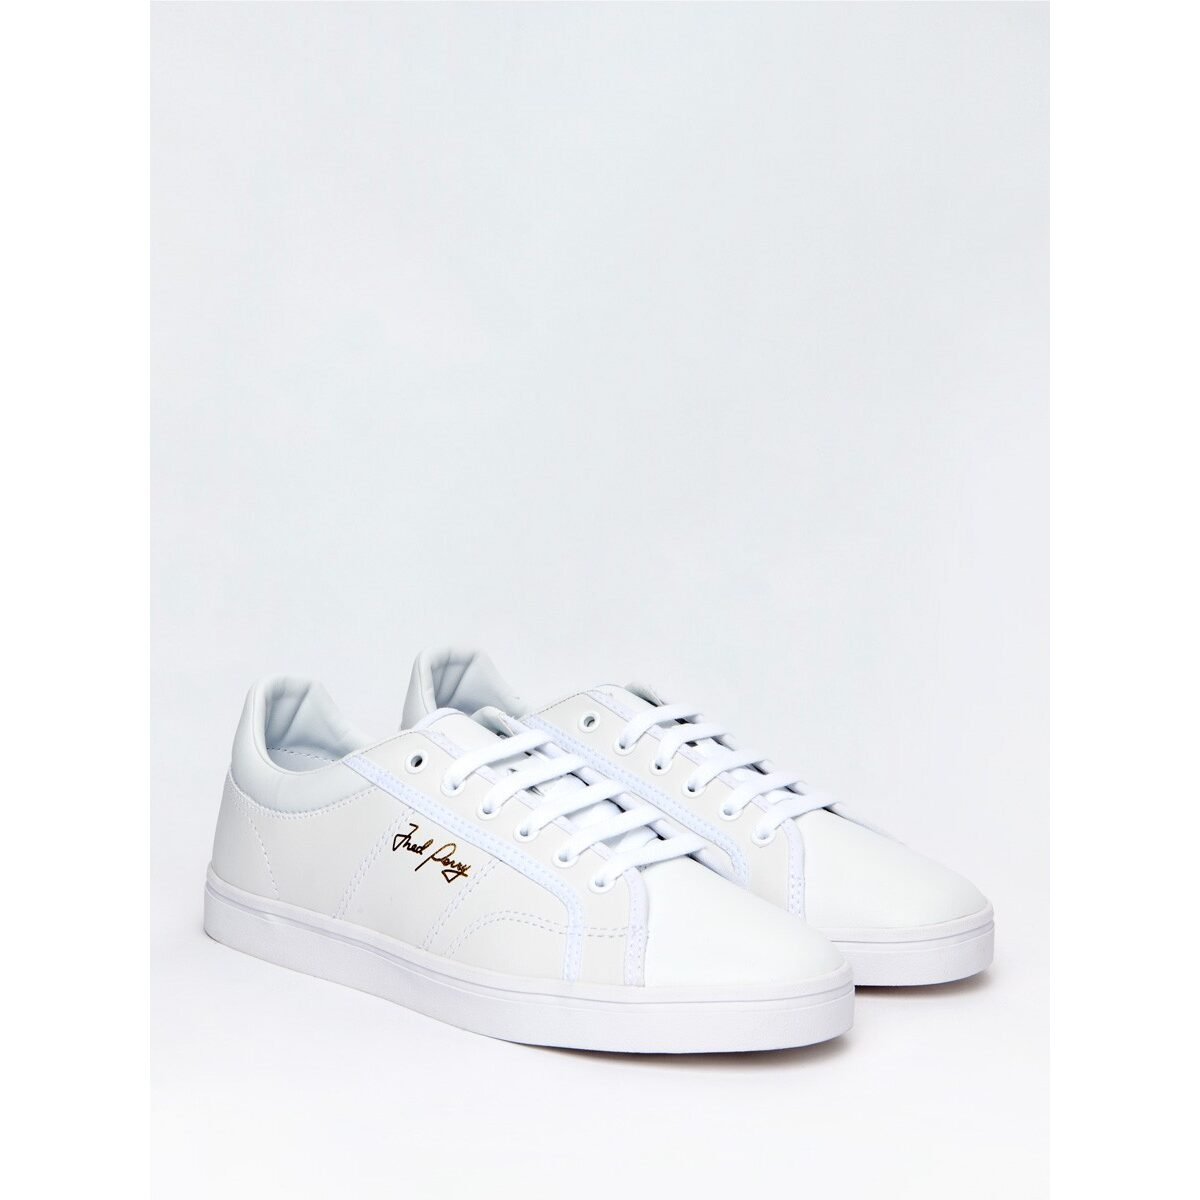 fred perry sidespin leather white b8245 161228 1 hotelshops 6